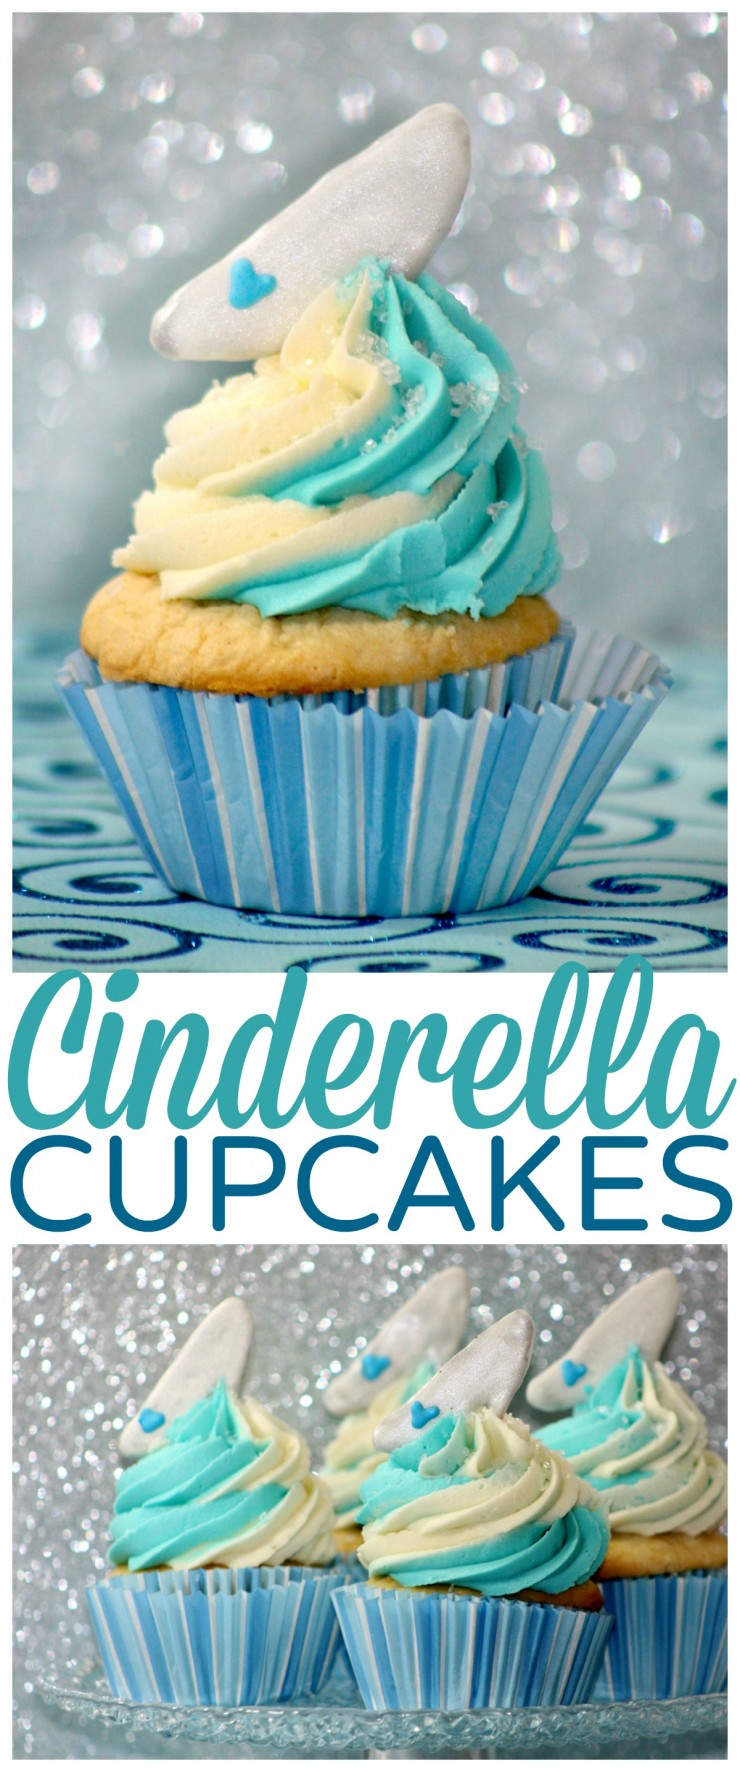 Disney's Cinderella cupcakes are inspired by Princess Cinderella and her glass slipper. Perfect for Cinderella themed parties & those who just love Disney!